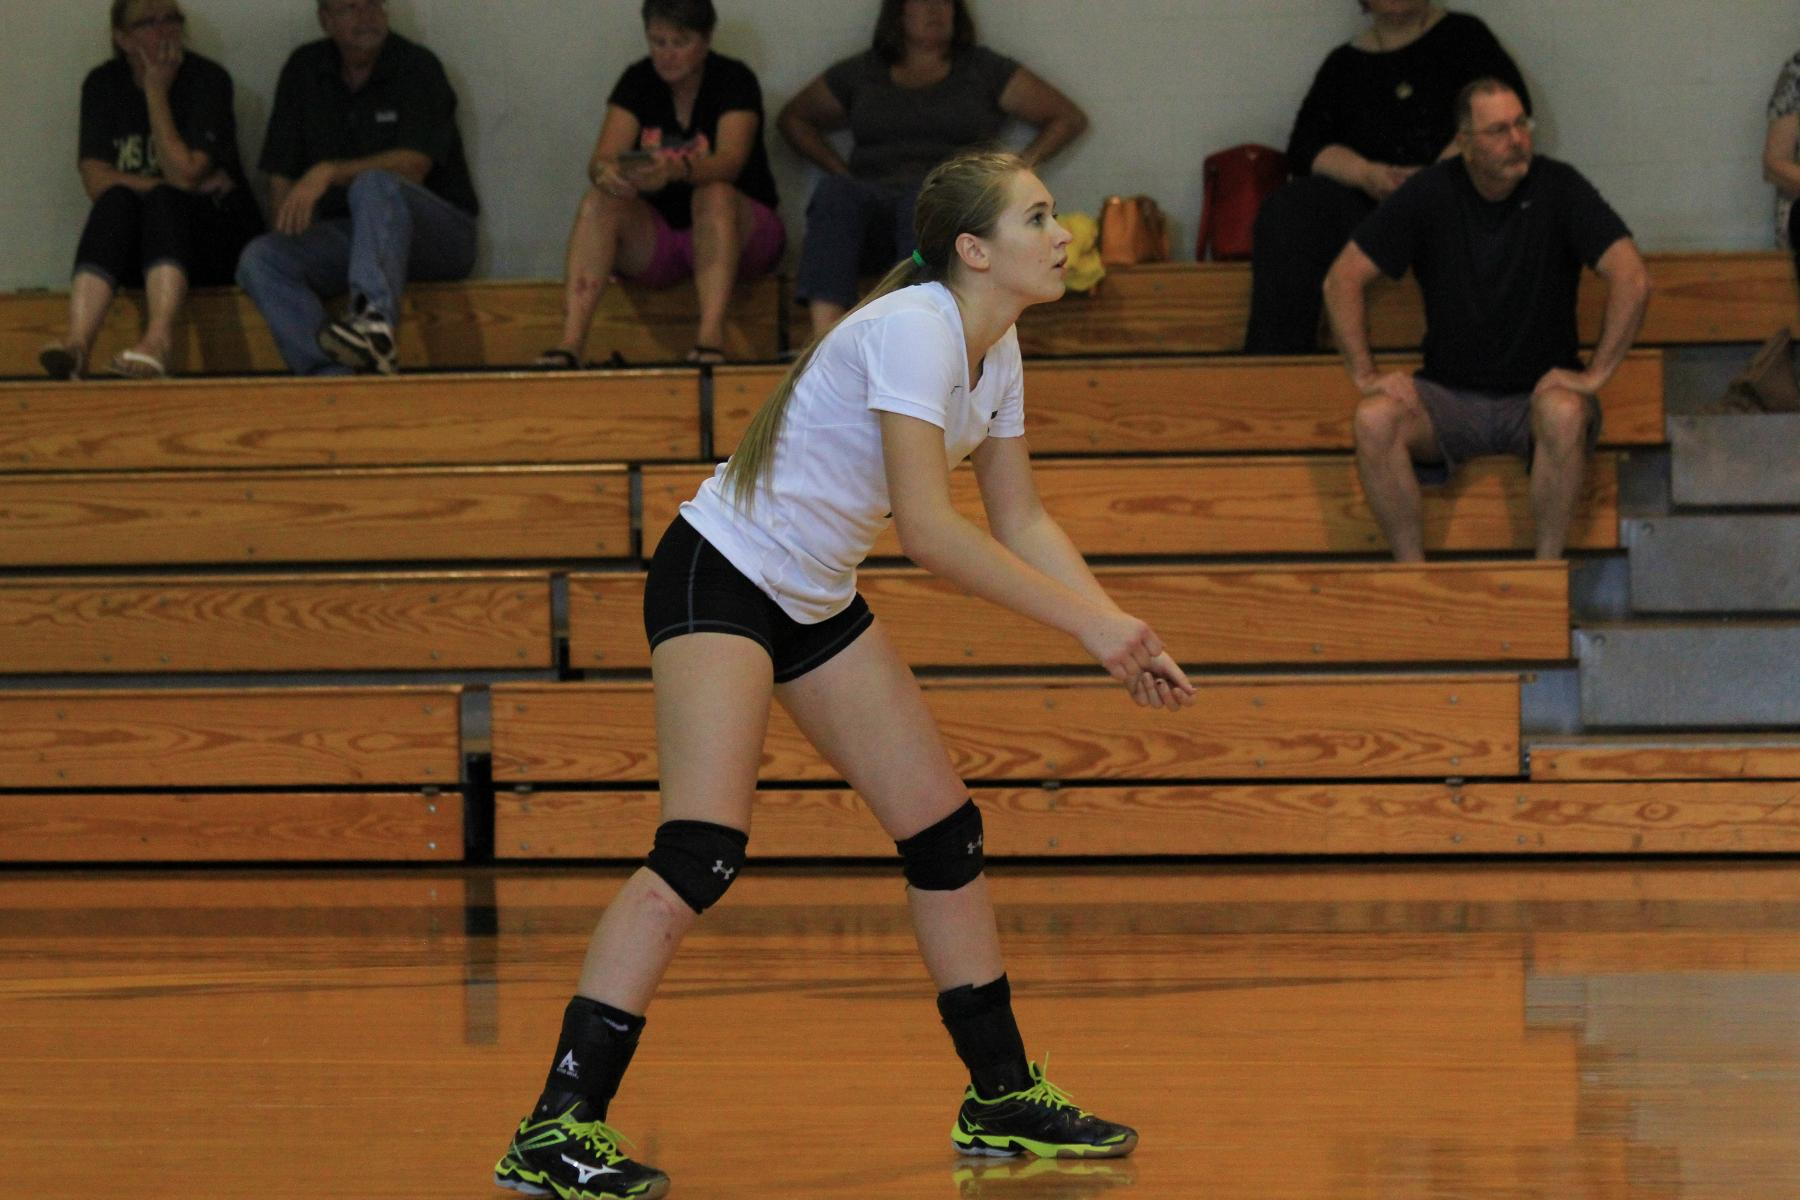 Western New England Sweeps Women's Volleyball